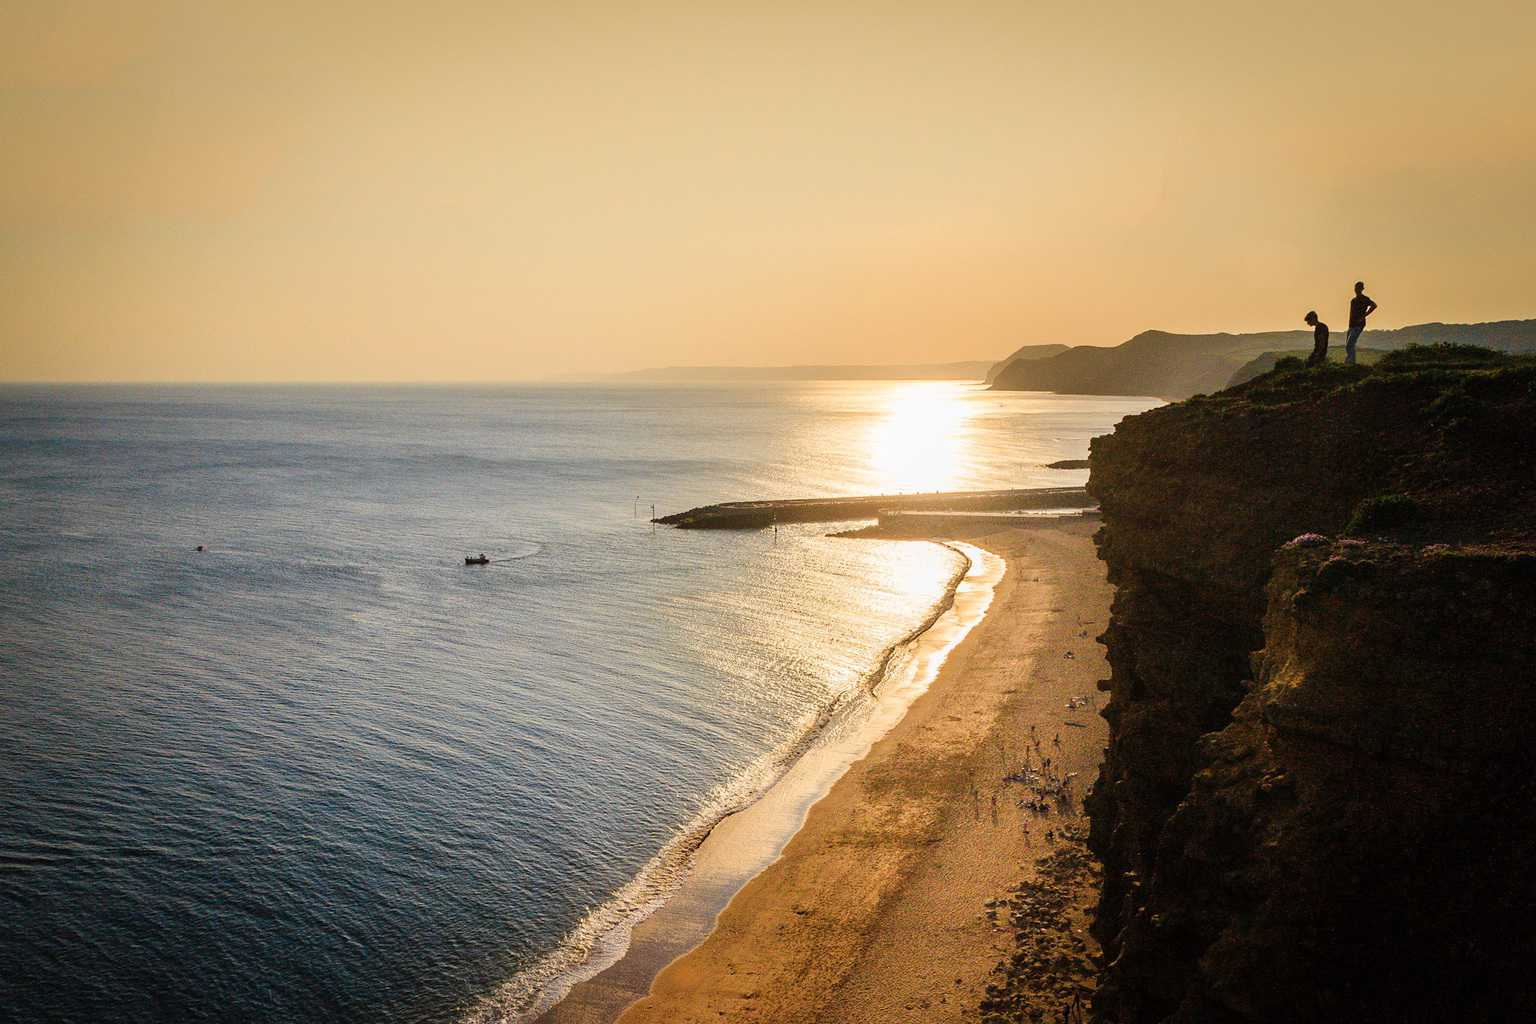 The beach at West Bay viewed from the cliffs above